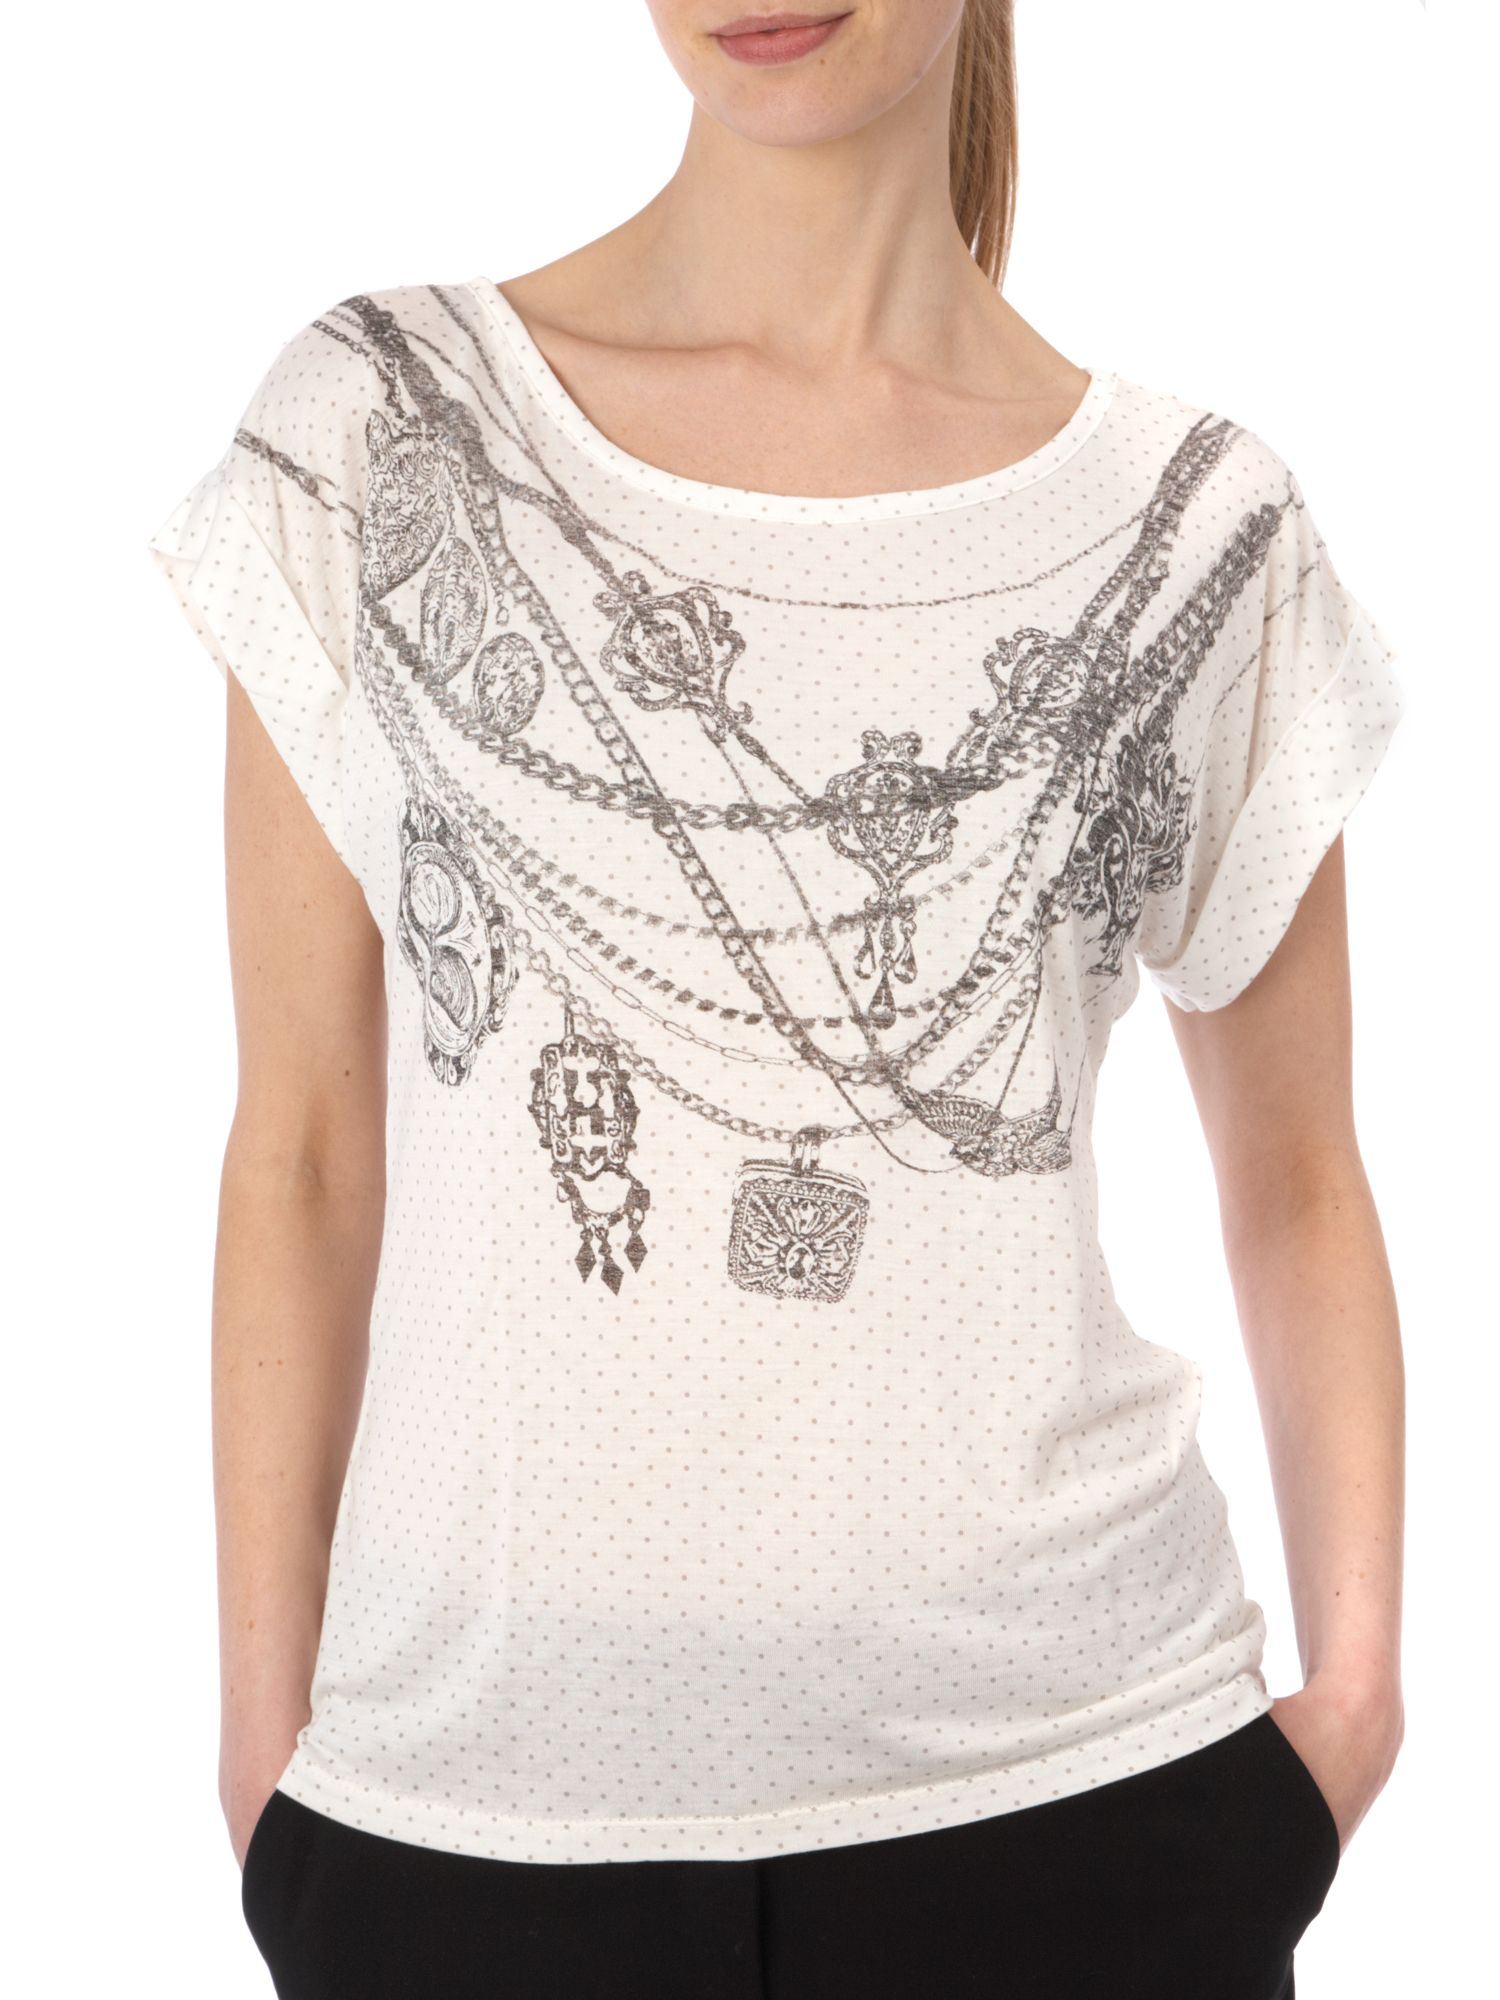 Therapy Spot chain t-shirt product image